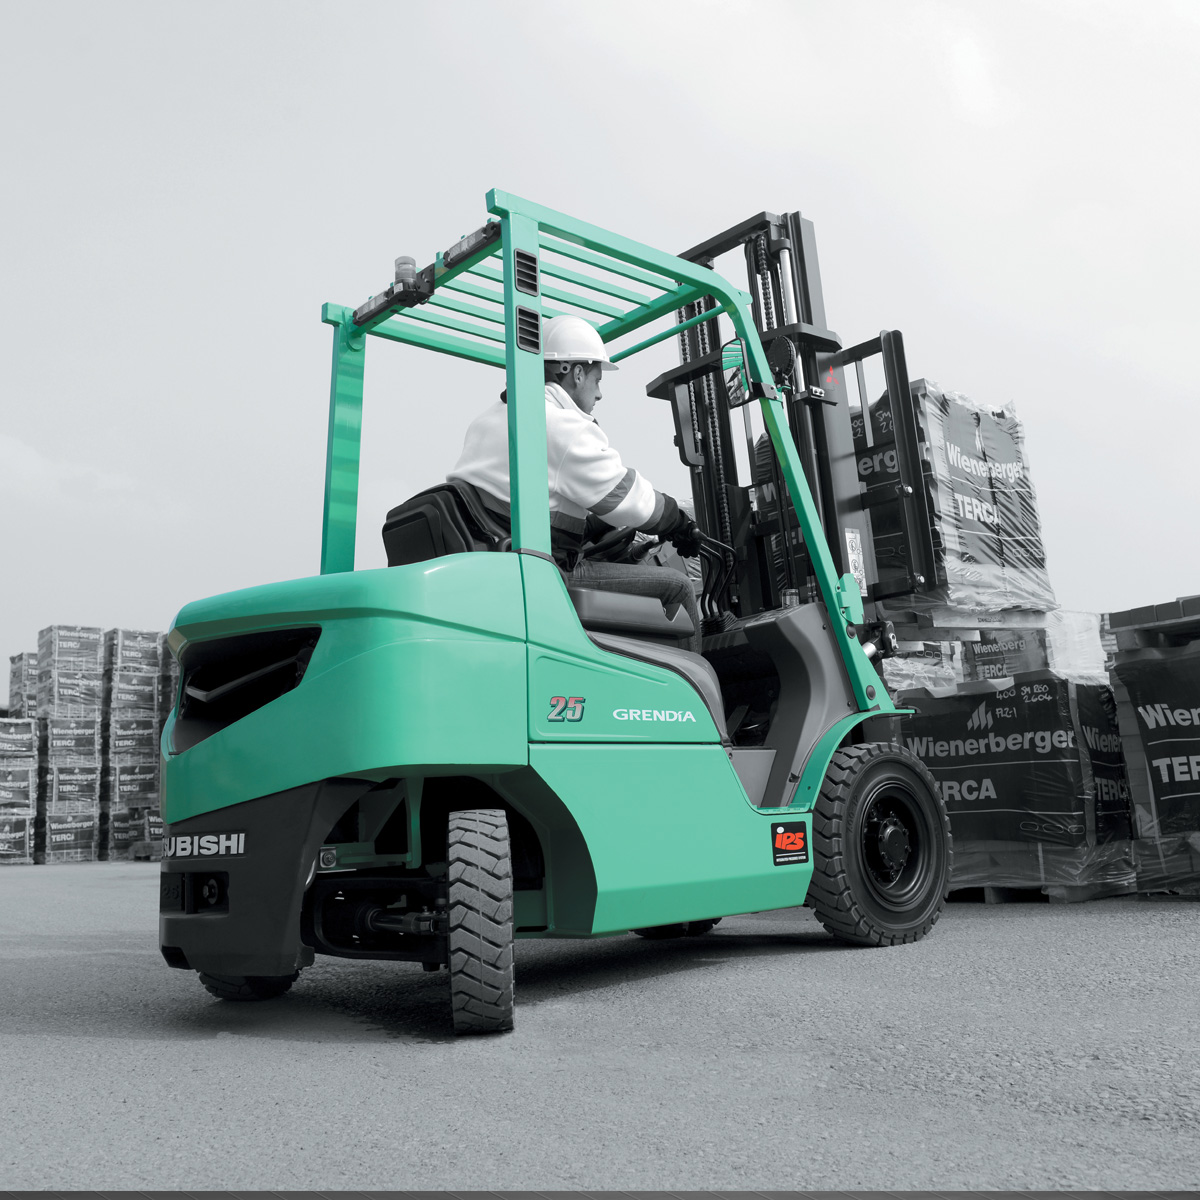 Select location type business with dock or forklift business without - Select Location Type Business With Dock Or Forklift Business Without 69